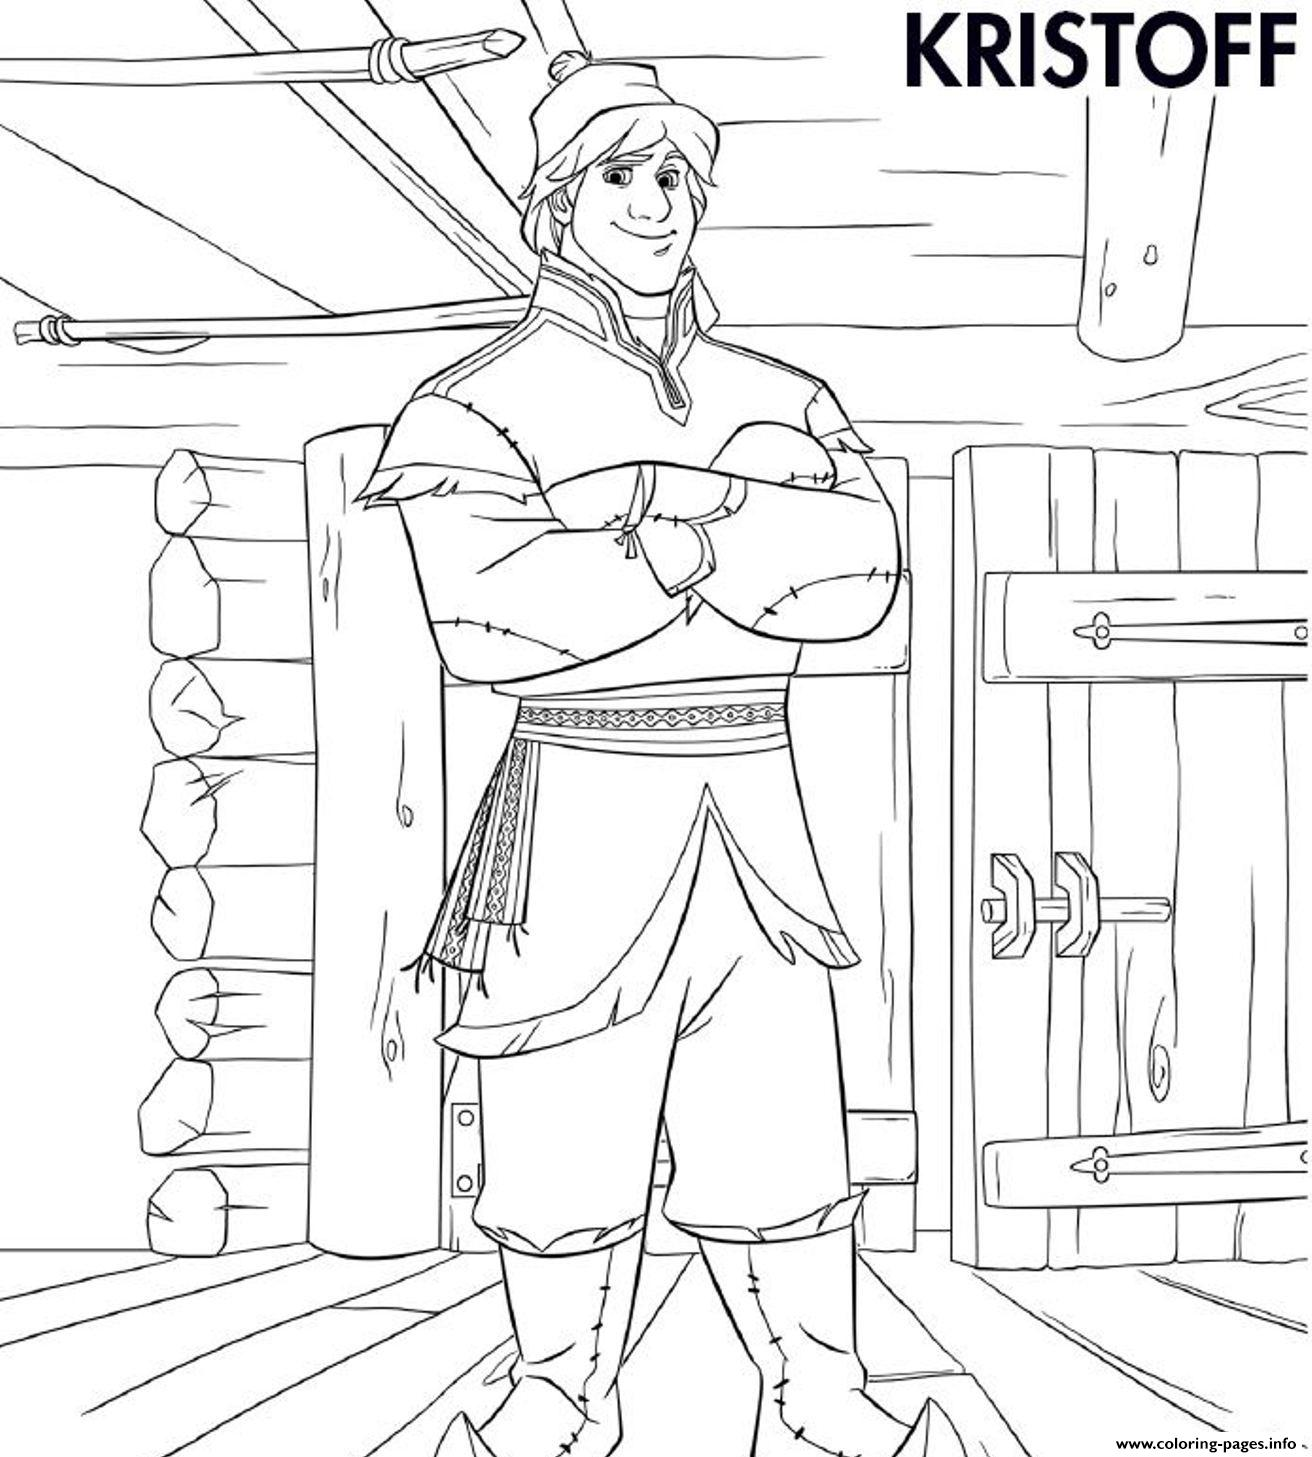 Kristoff Frozen D1f2 coloring pages